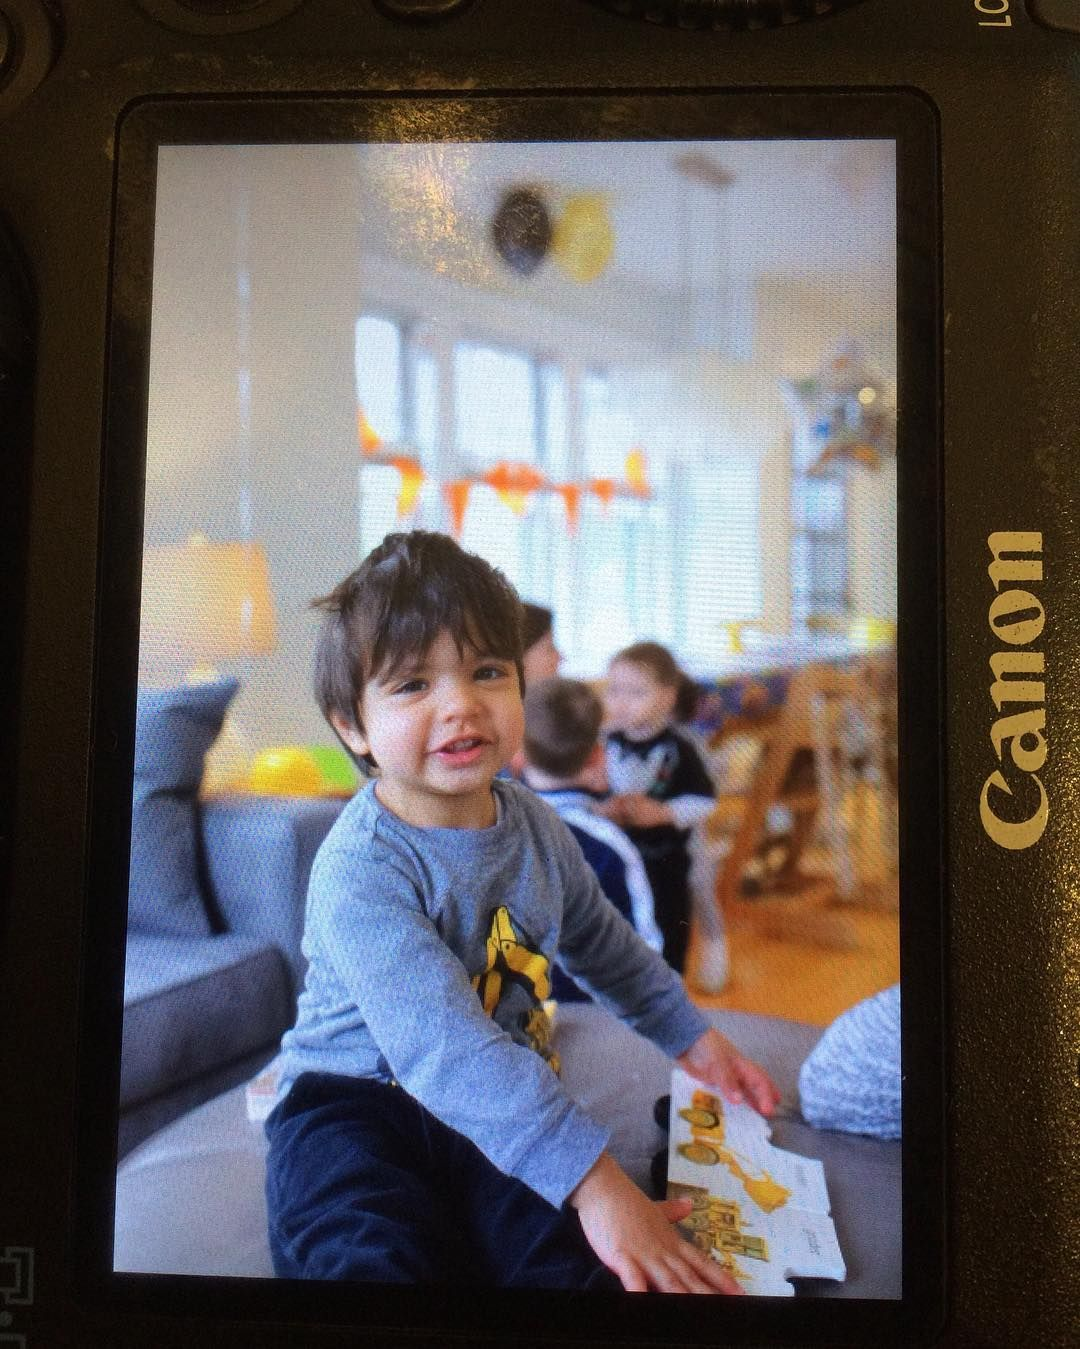 The birthday boy! (Wish I could find this digger shirt in bigger sizes - he wants to wear it all the time!) #julian #birthdayboy #birthday #two #toddler #growingup #backofcamera #canon #sigmaart35mm